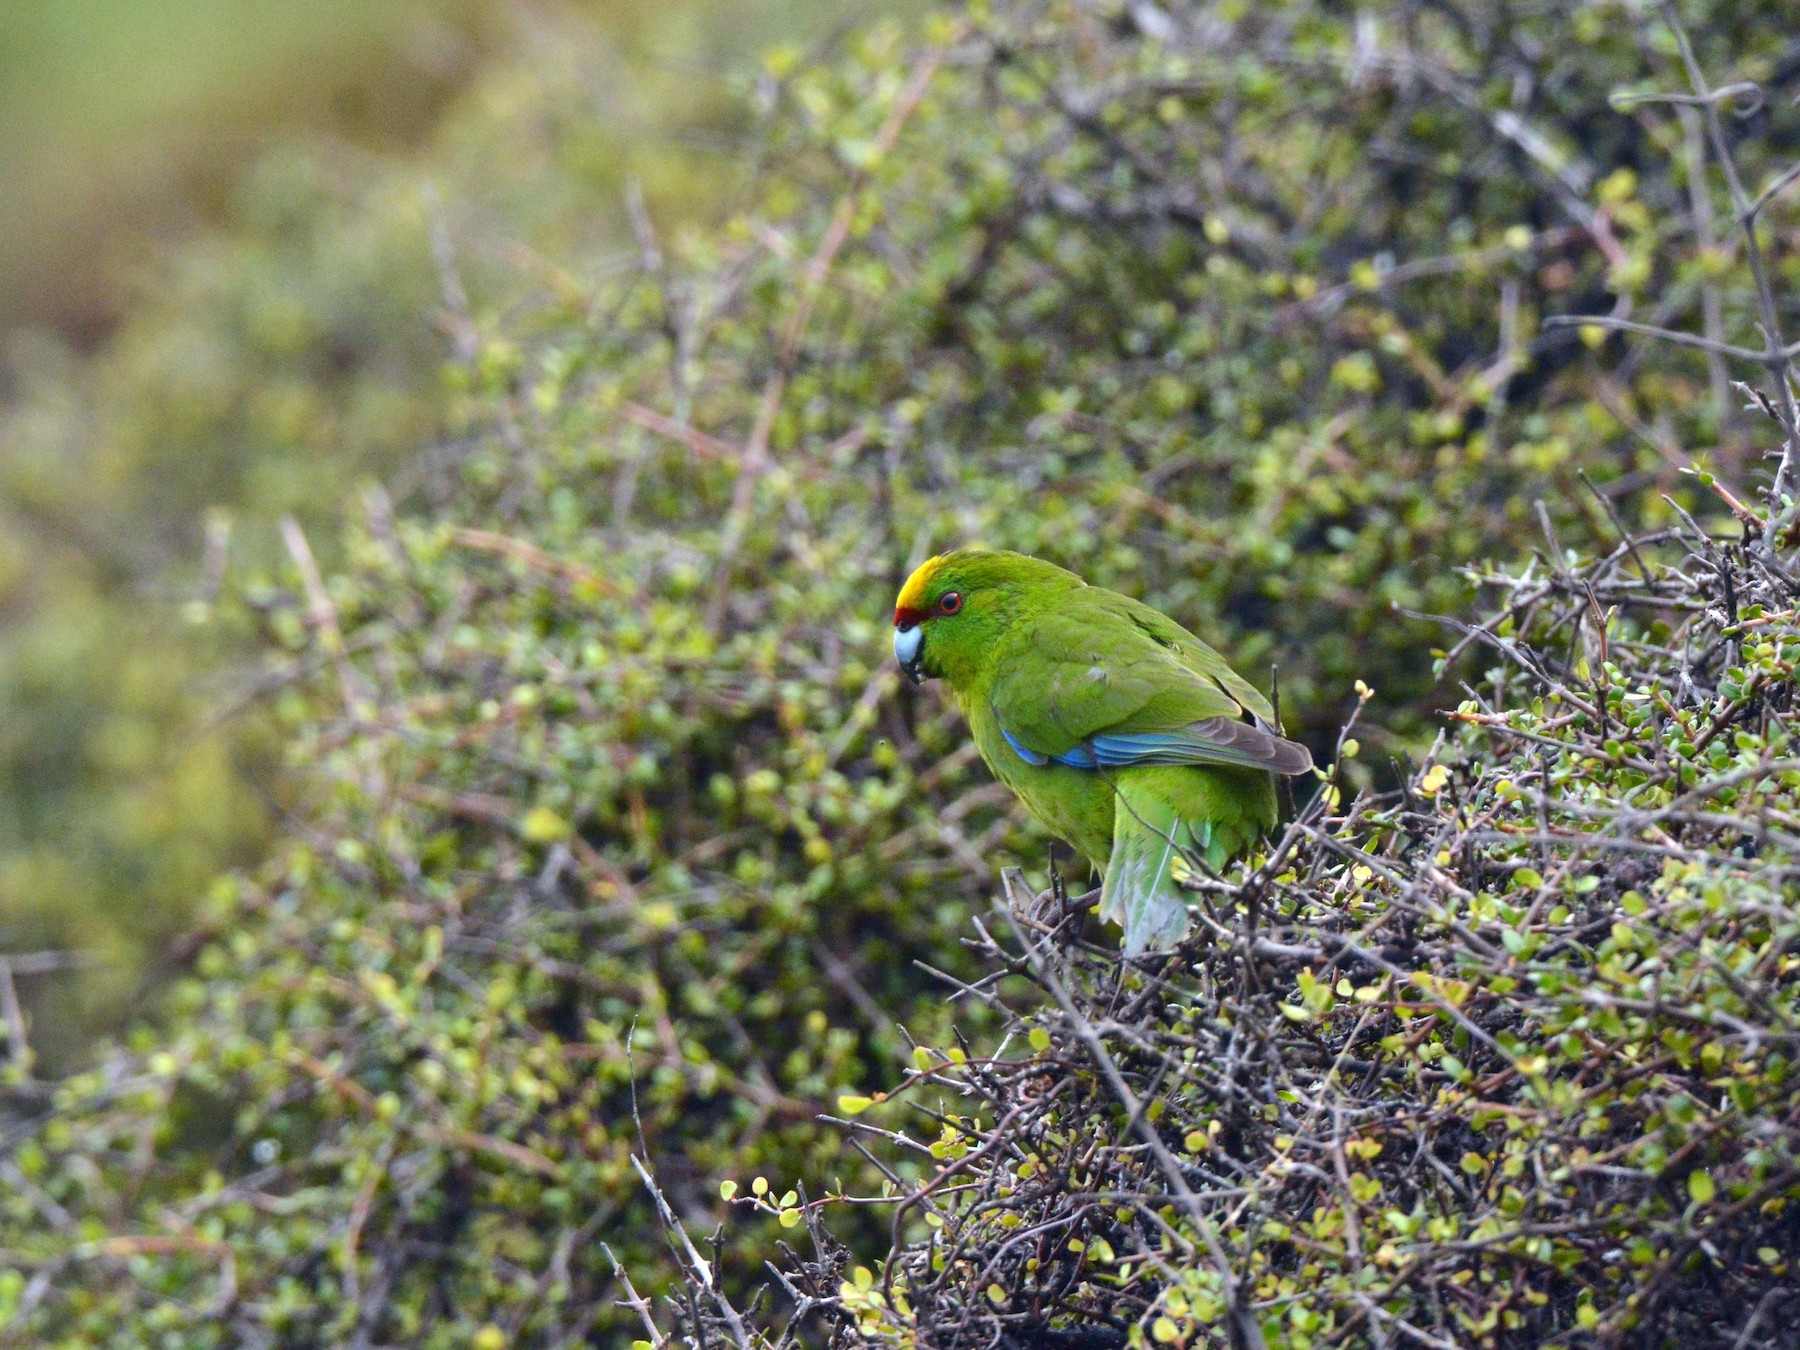 Yellow-crowned Parakeet - Christopher Stephens